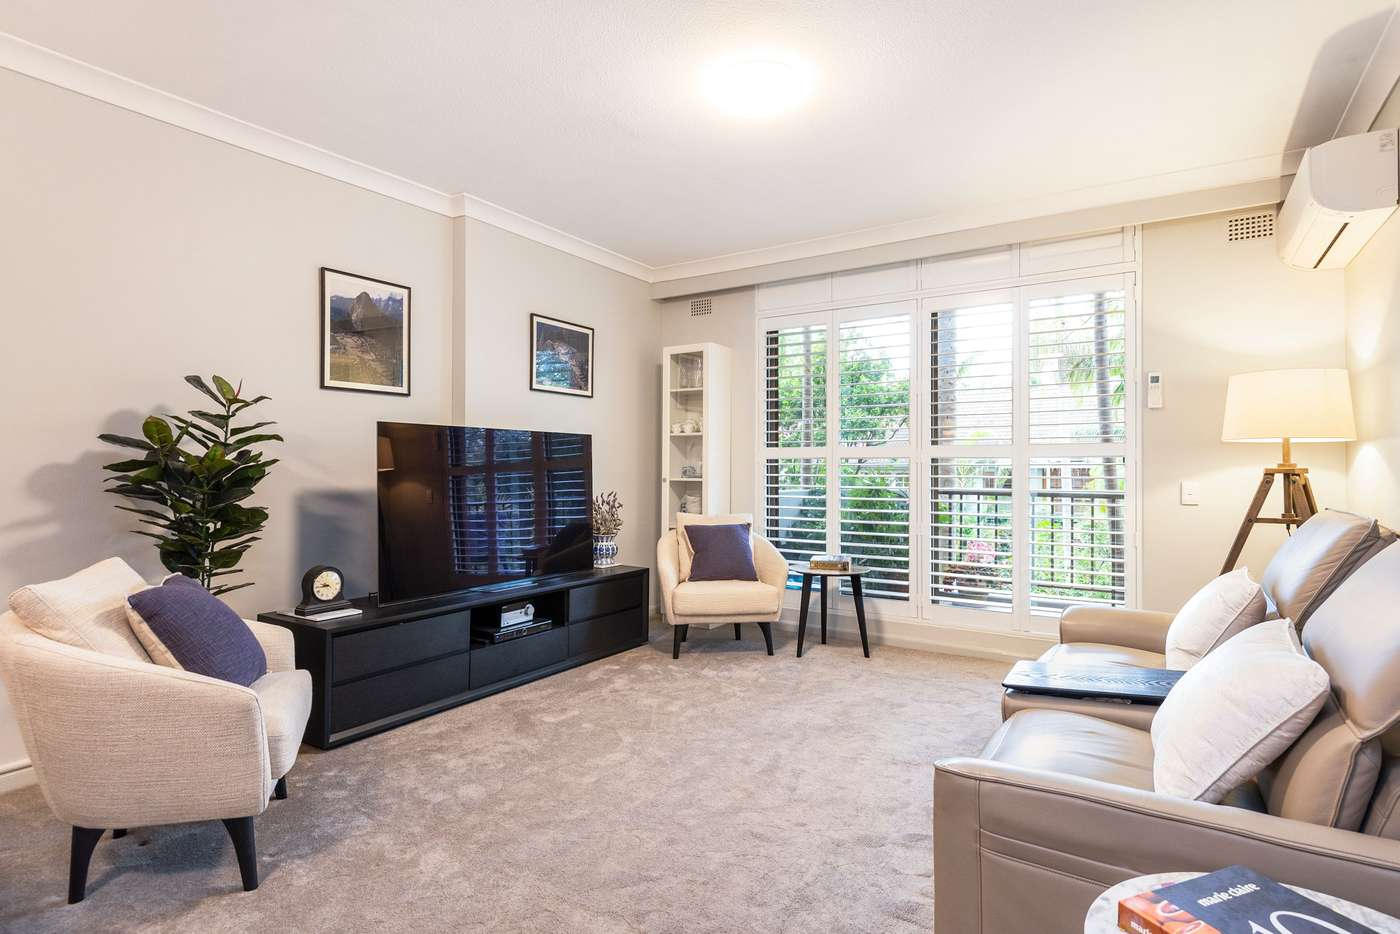 Main view of Homely apartment listing, 101/125-131 Spencer Road, Cremorne NSW 2090